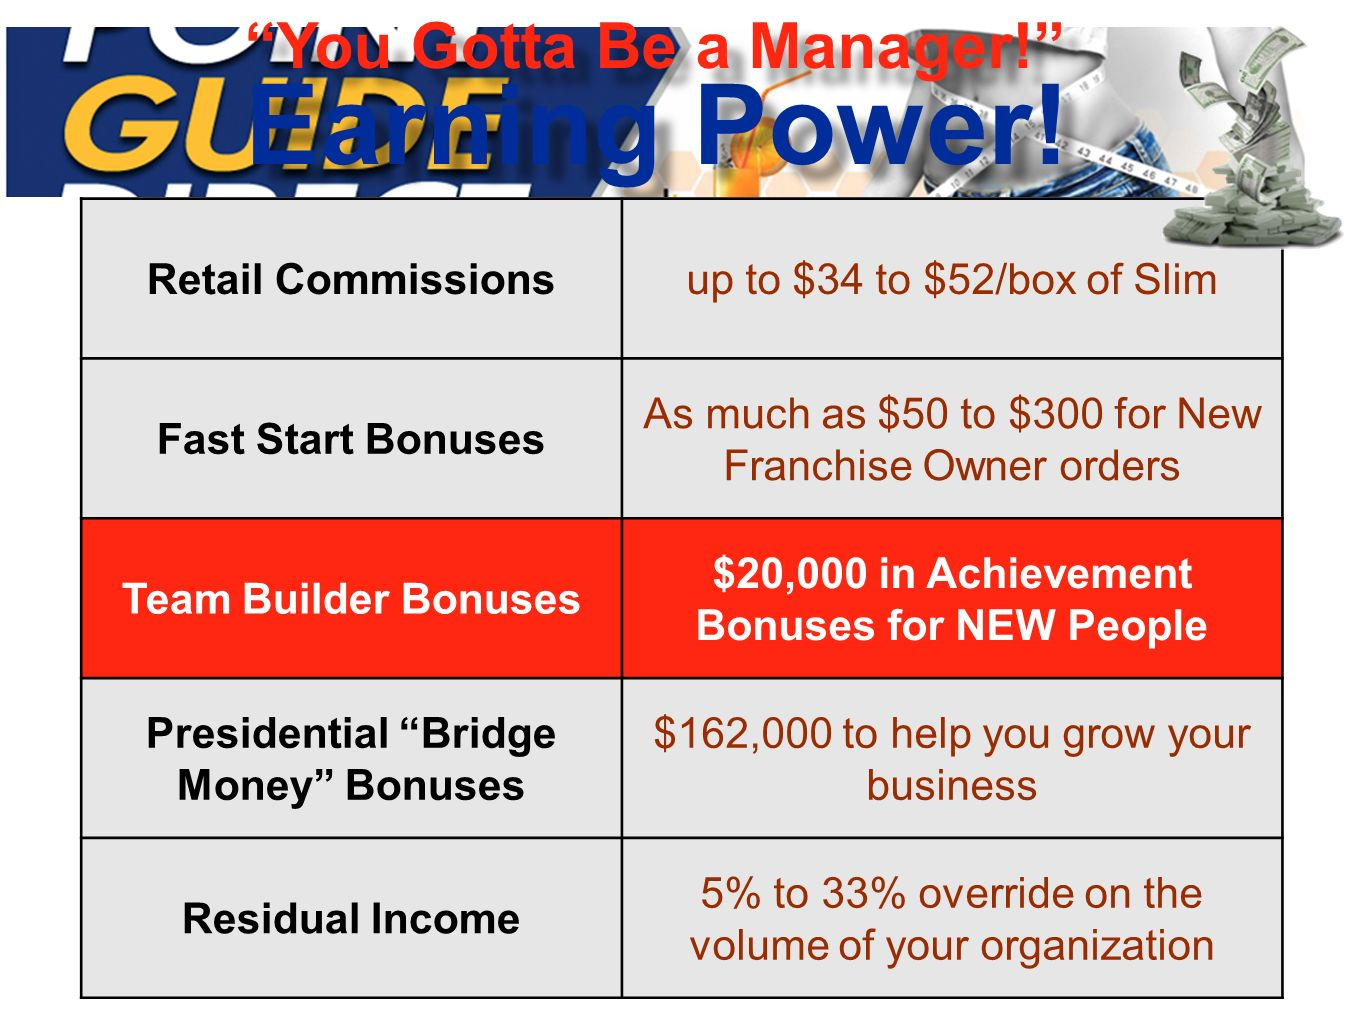 Earning Power! Retail Commissionsup to $34 to $52/box of Slim Fast Start Bonuses As much as $50 to $300 for New Franchise Owner orders Team Builder Bo